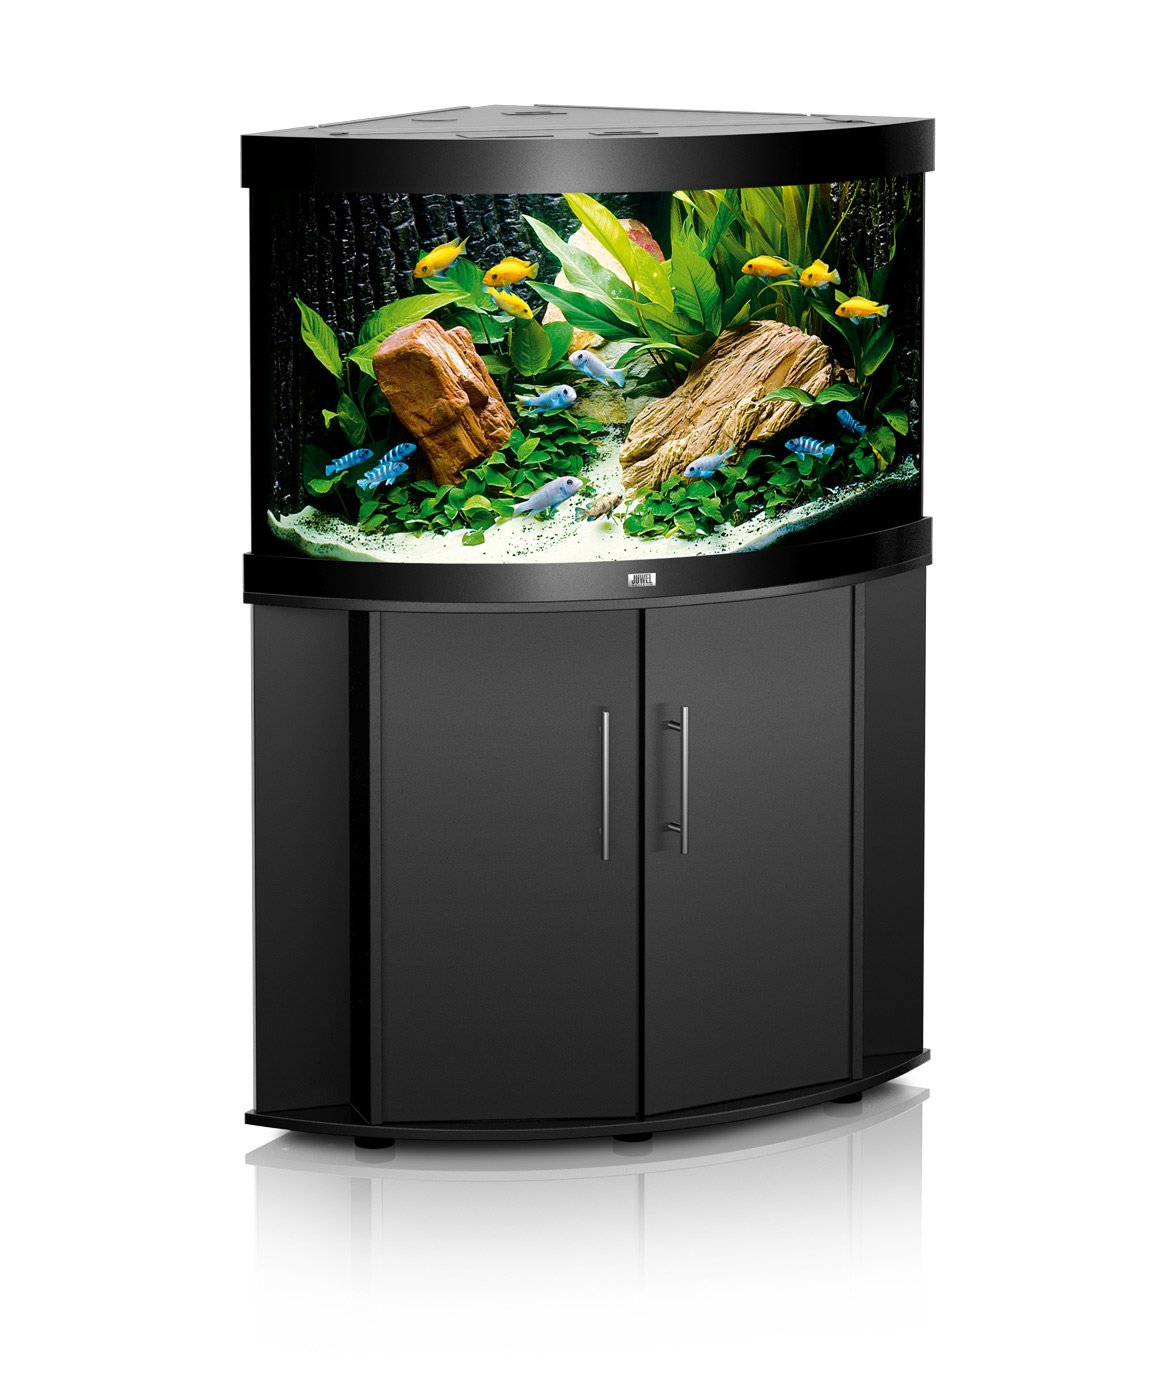 aquarium juwel trigon 190 dim 99 x 70 x 60 cm 190 litres coloris au choix avec ou sans meuble. Black Bedroom Furniture Sets. Home Design Ideas